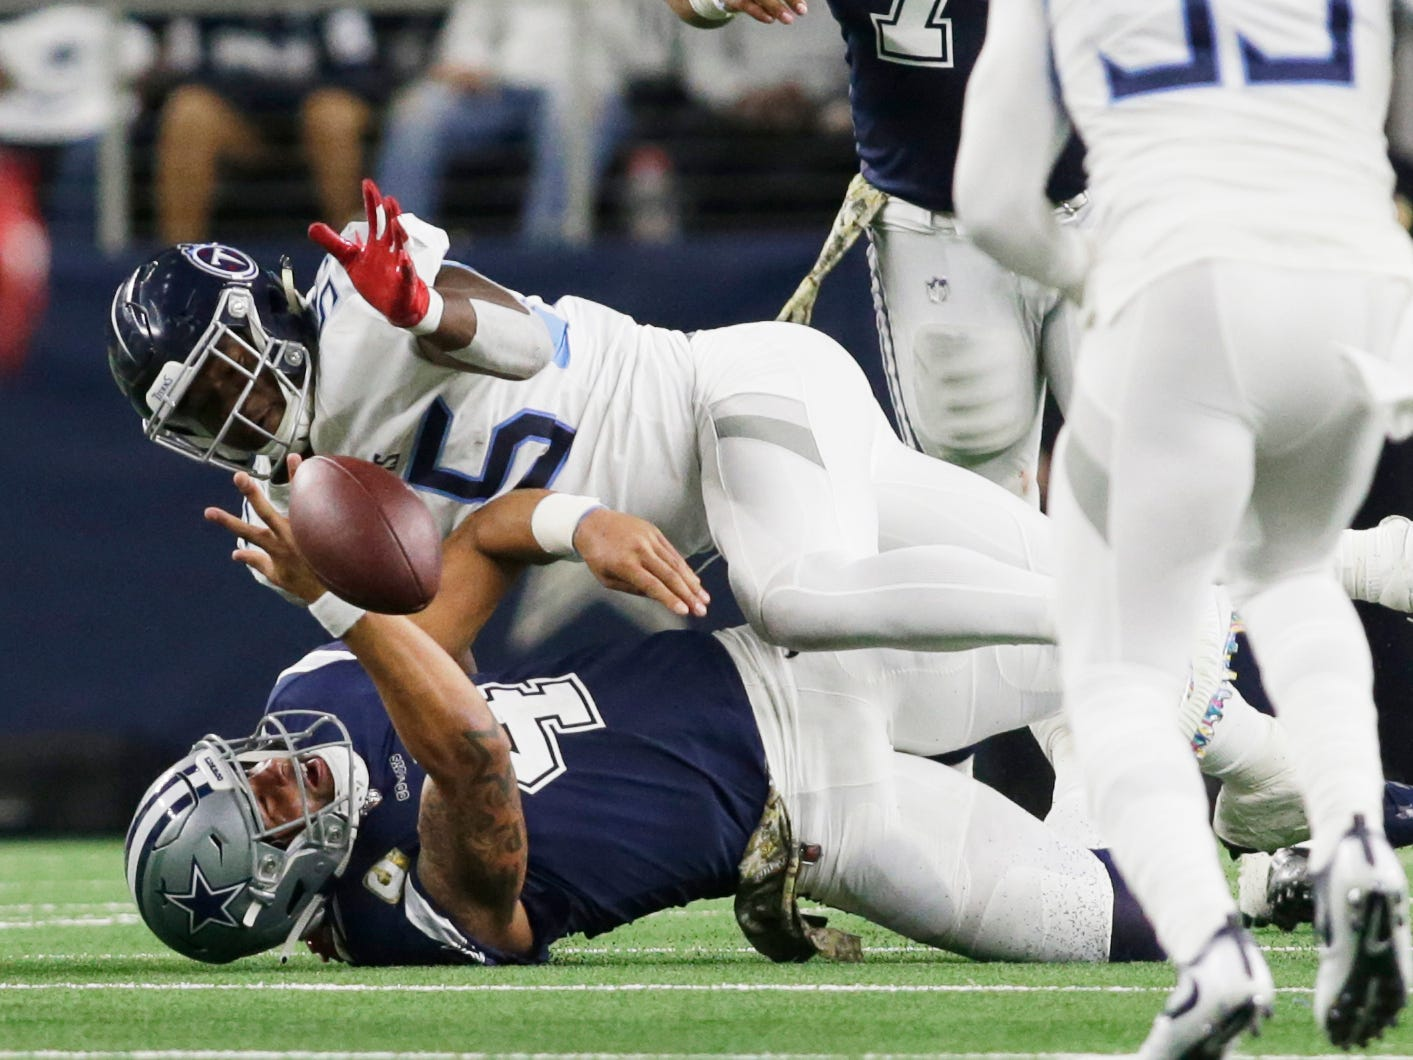 Dallas Cowboys quarterback Dak Prescott (4) fumbles after being tackled by Tennessee Titans inside linebacker Jayon Brown (55) in the third quarter at AT&T Stadium.